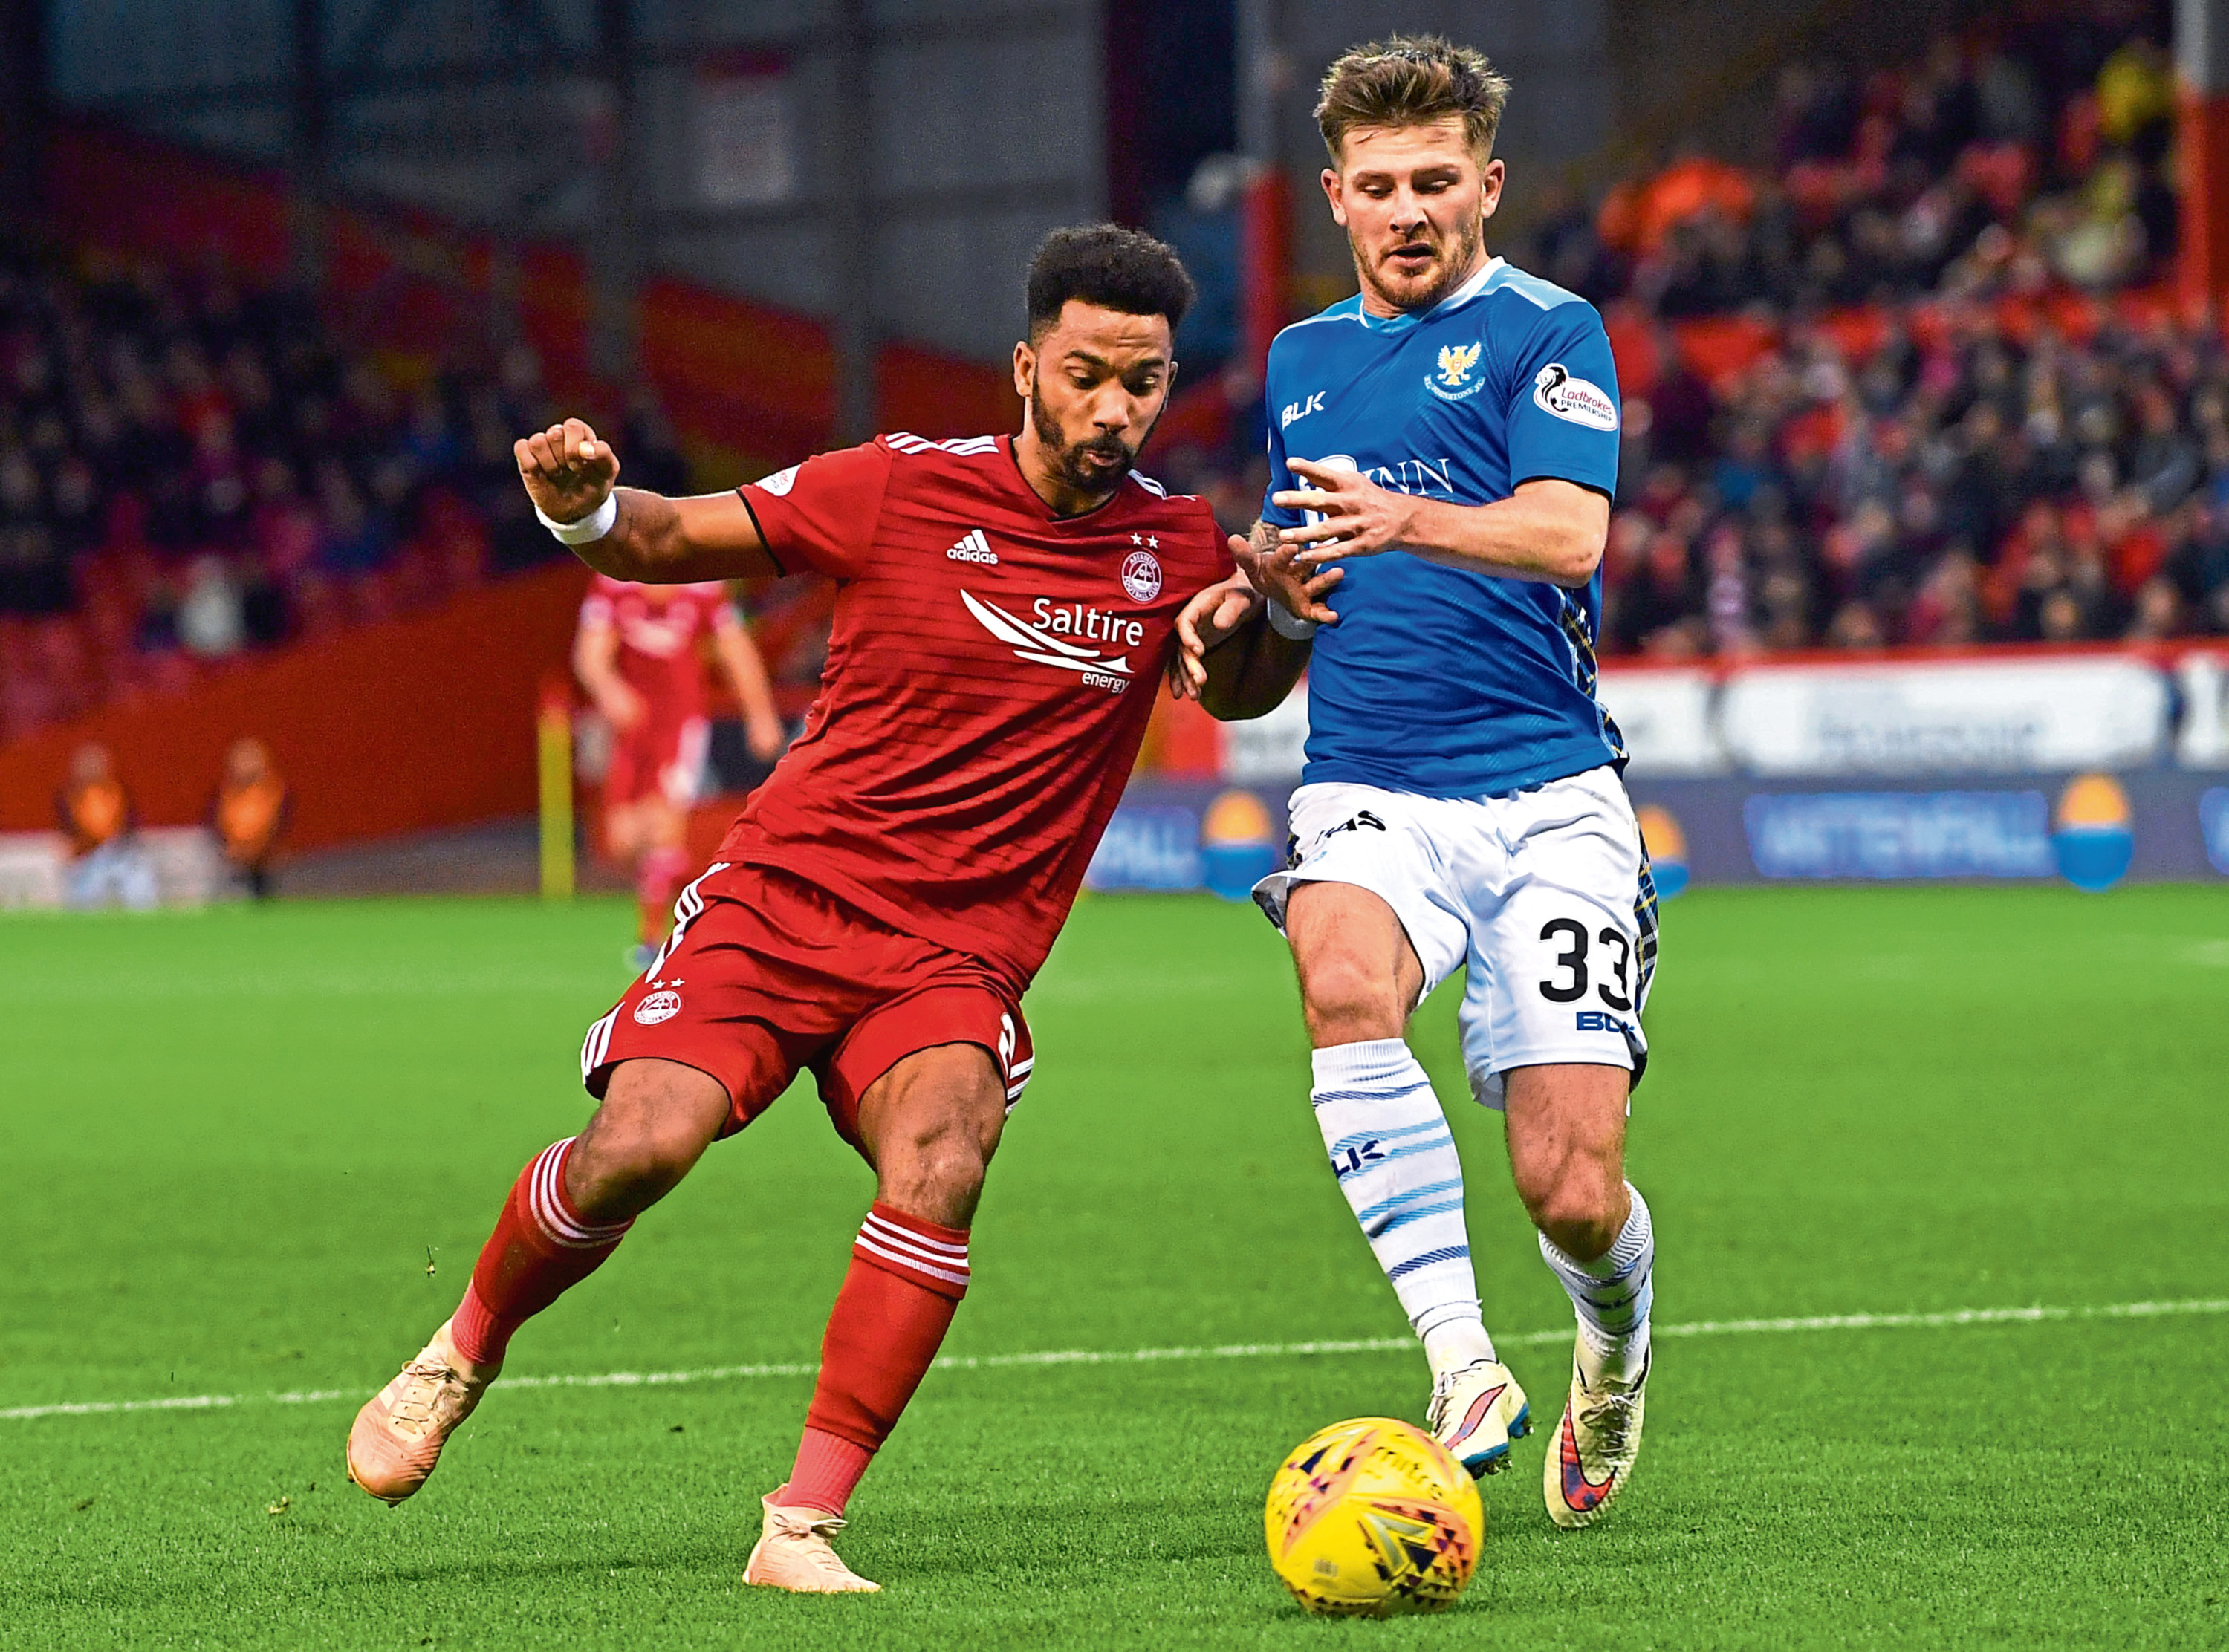 Aberdeen's Shay Logan (left) competes with St Johnstone's Matty Kennedy.